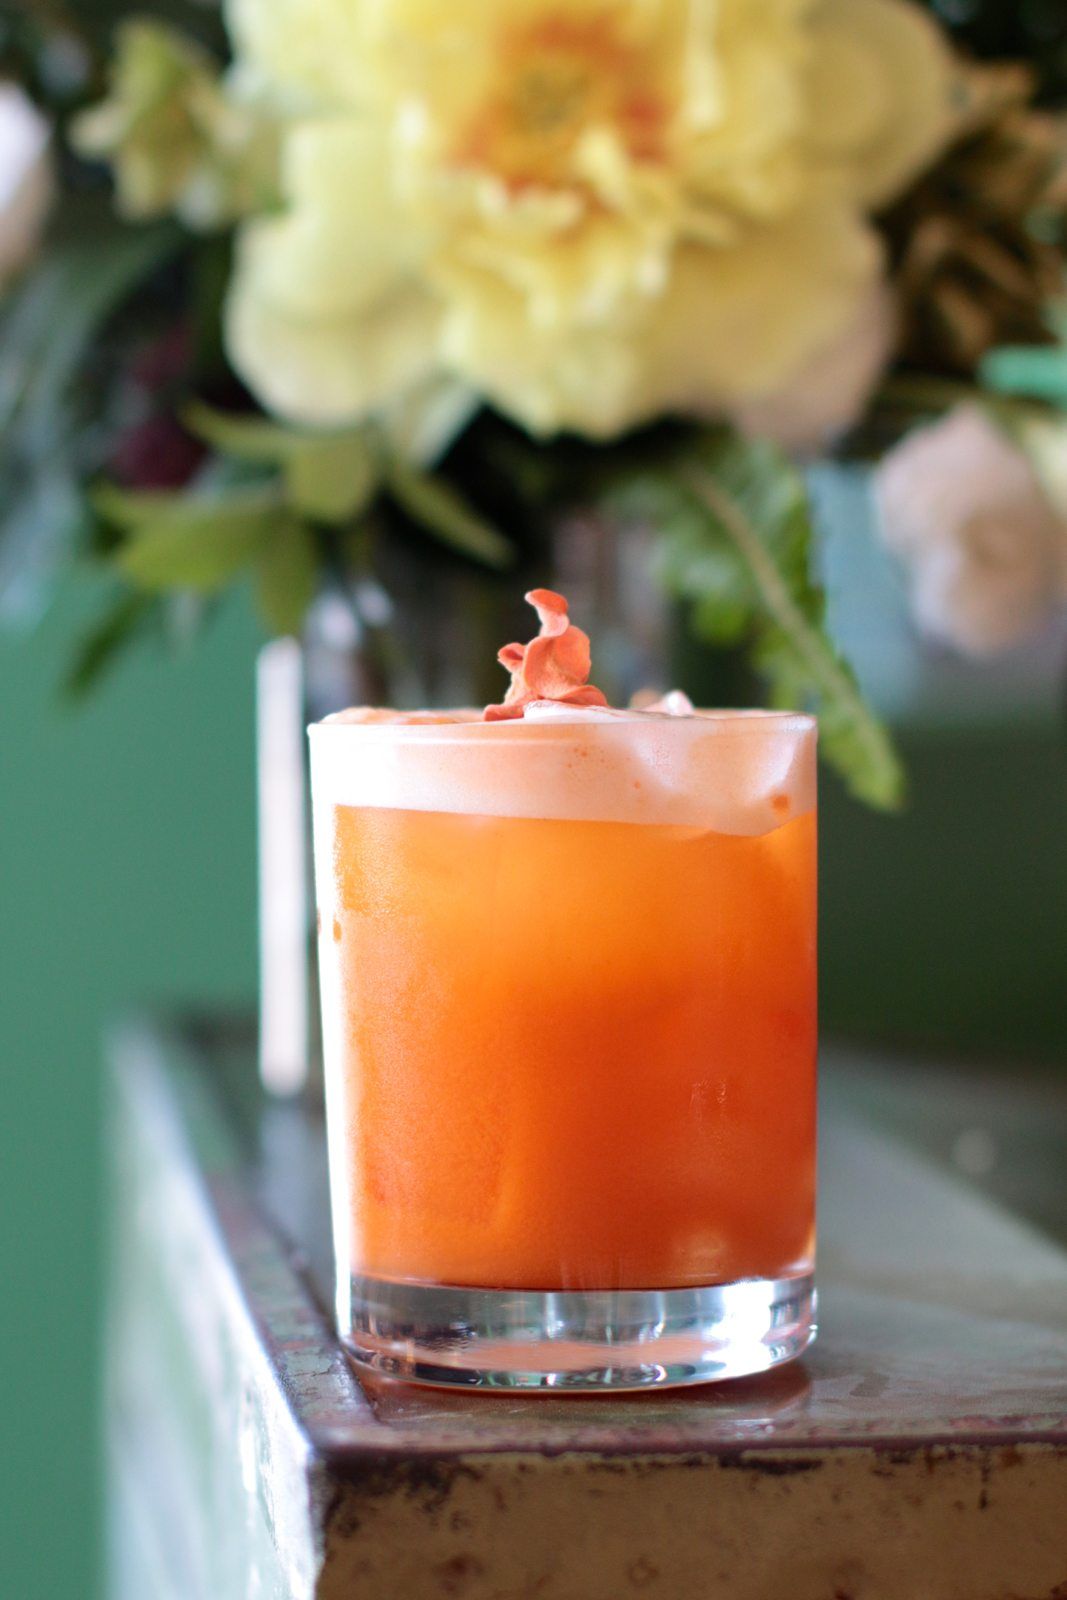 The Queen Street Sour is a mix of Gooderham & Worts Whisky and carrot-apple-tumeric-lemon juice, topped with a chickpea-derived vegan foam. $15.